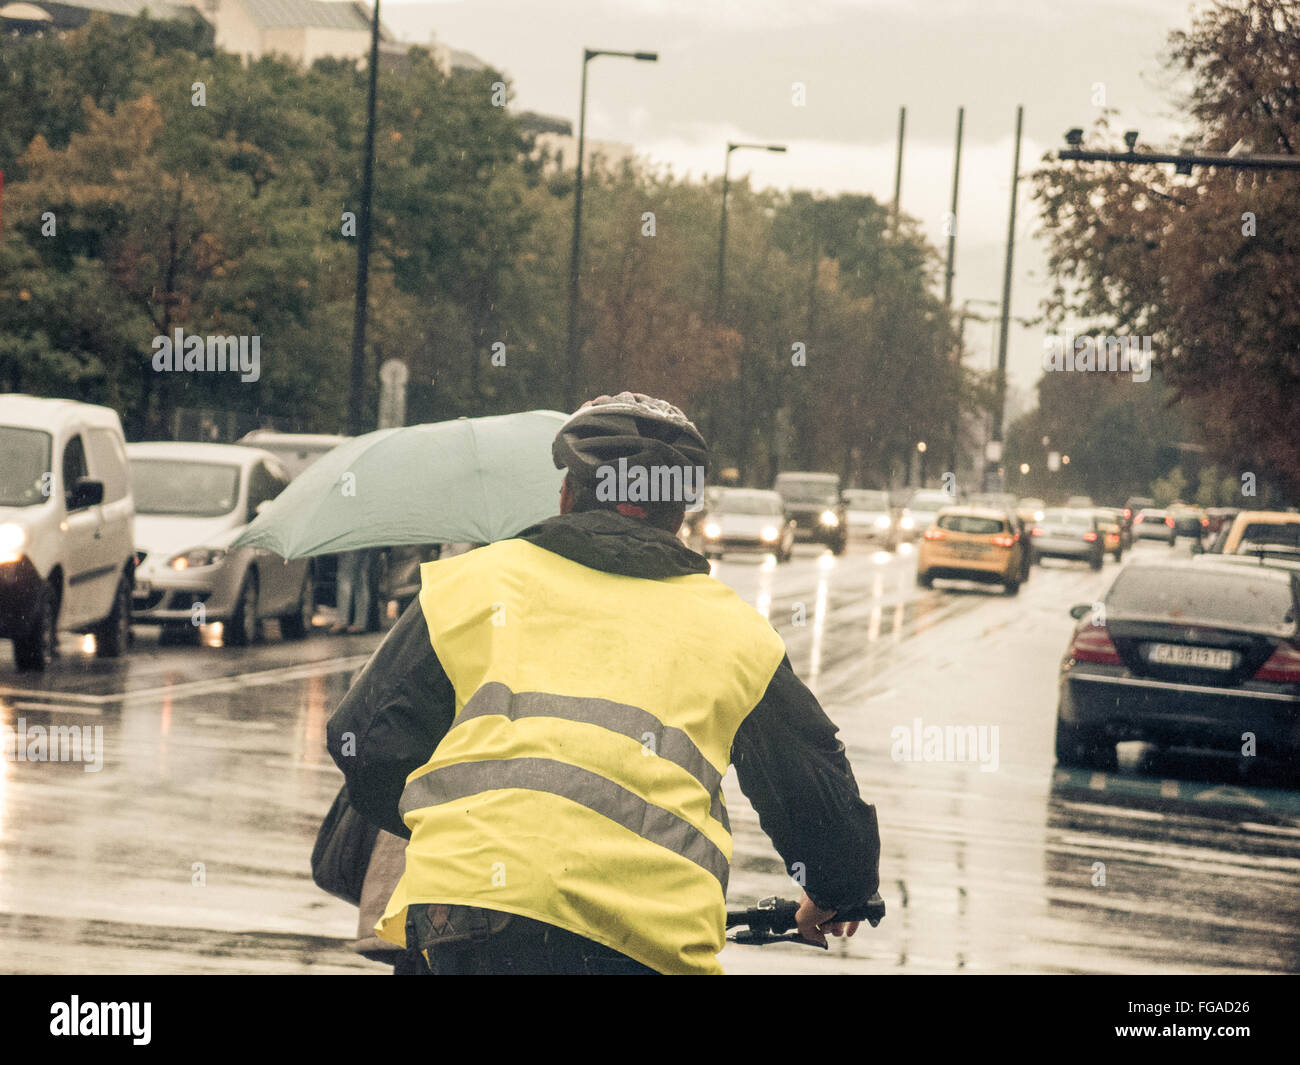 Rear View Of Man In Reflective Clothing Cycling On Wet City Street - Stock Image